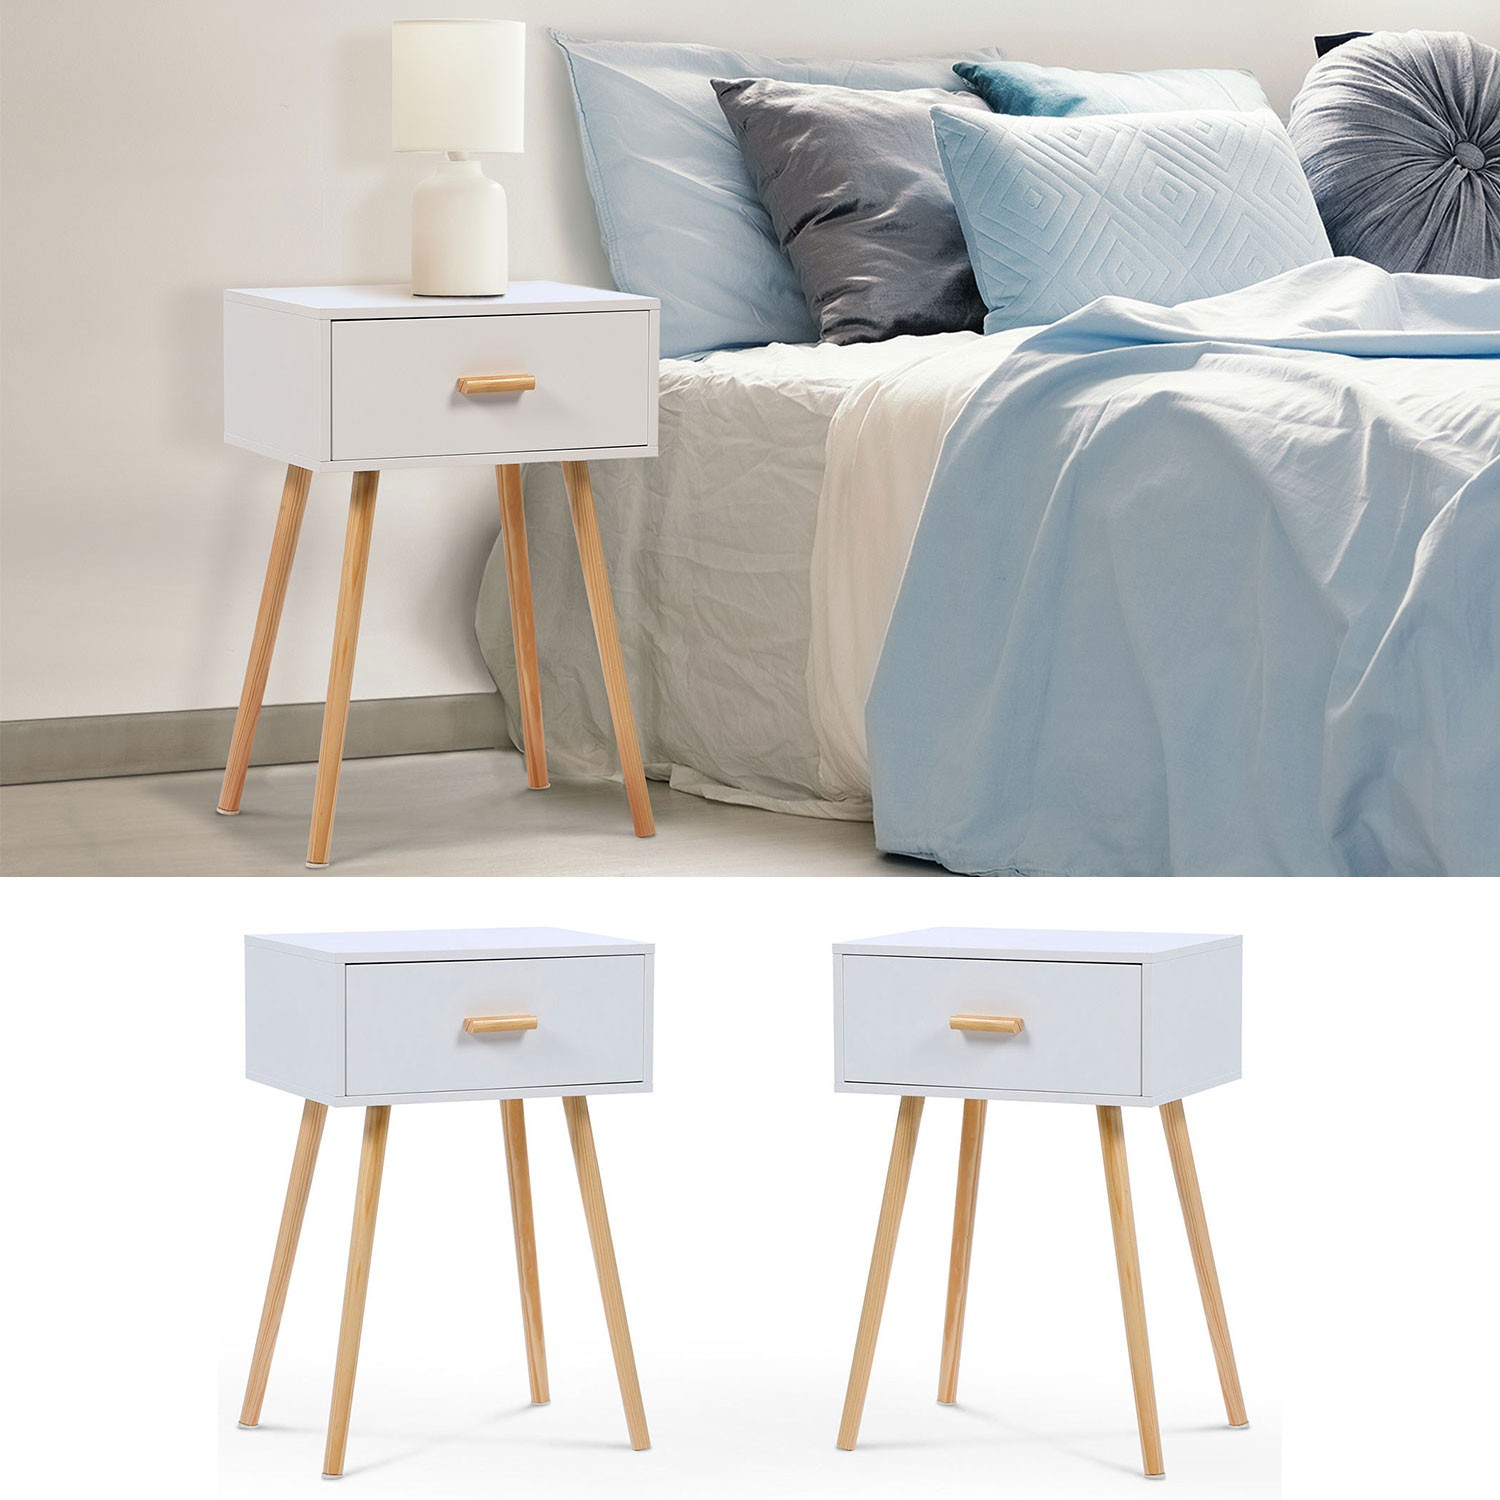 lot de 2 tables de chevet blanches scandinaves en bois. Black Bedroom Furniture Sets. Home Design Ideas